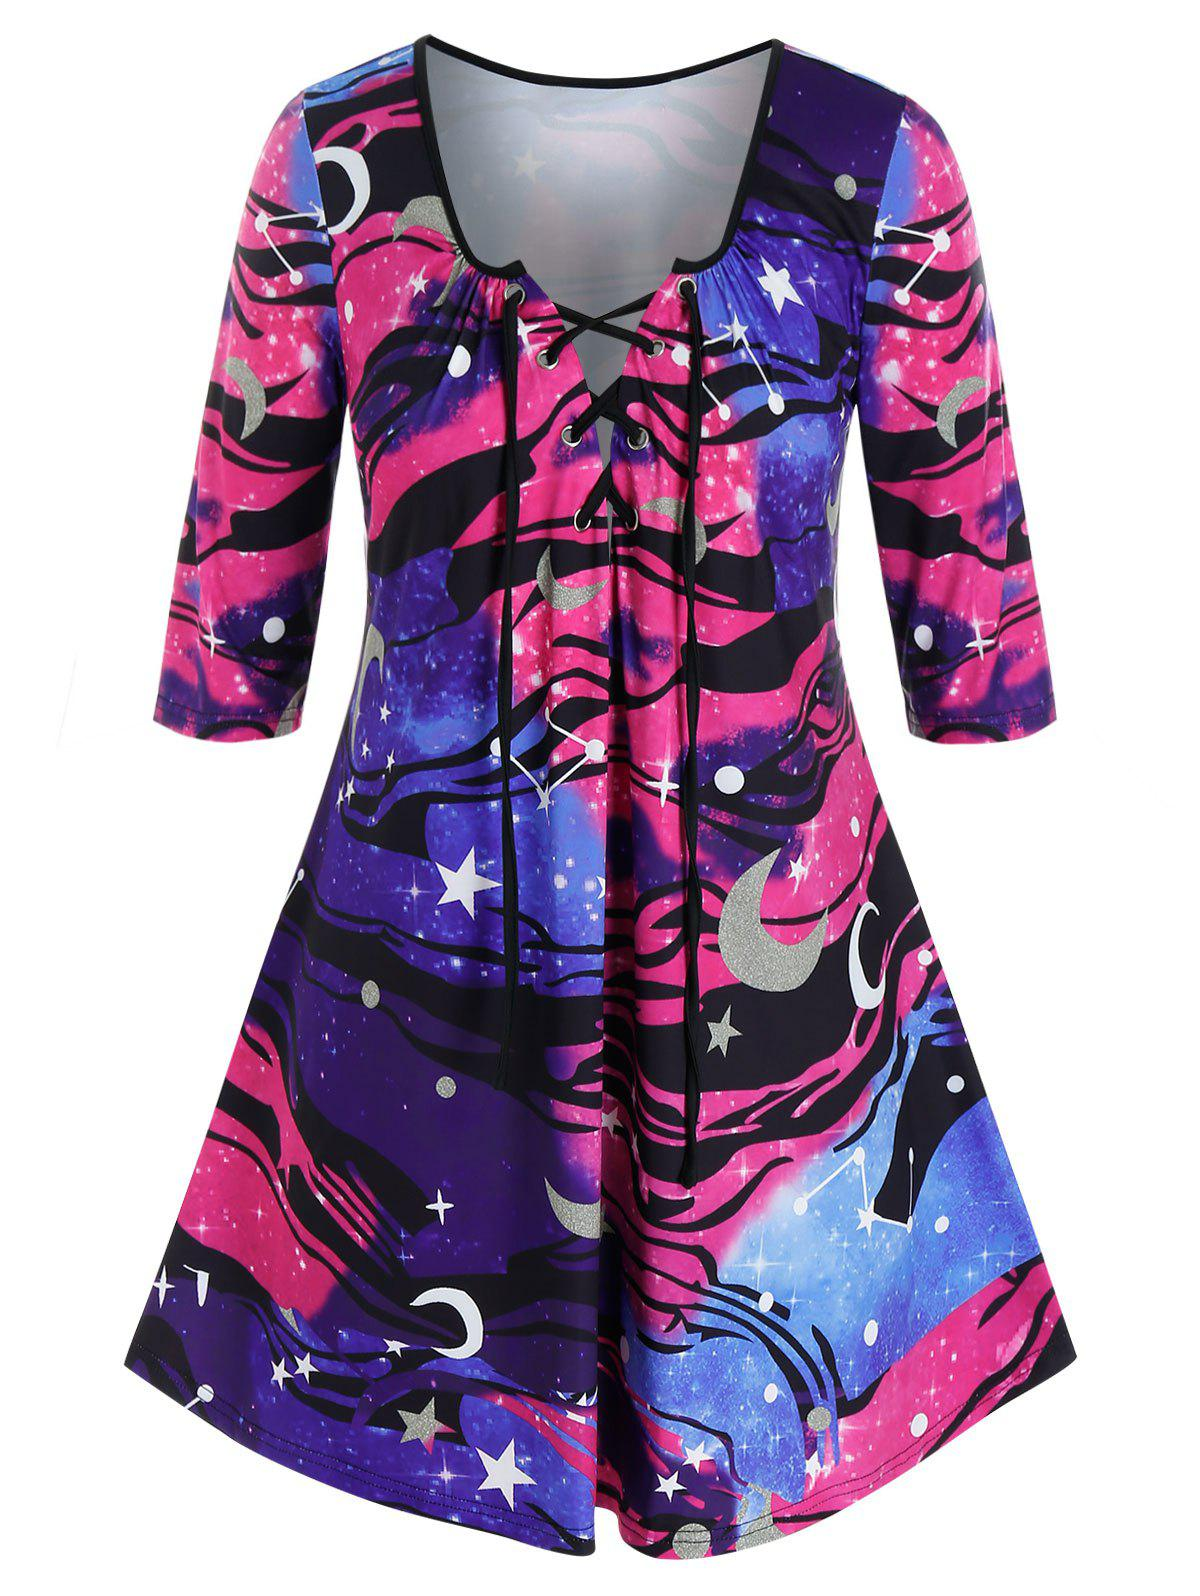 Plus Size Galaxy Moon and Star Lace-up Tee - multicolor 5X